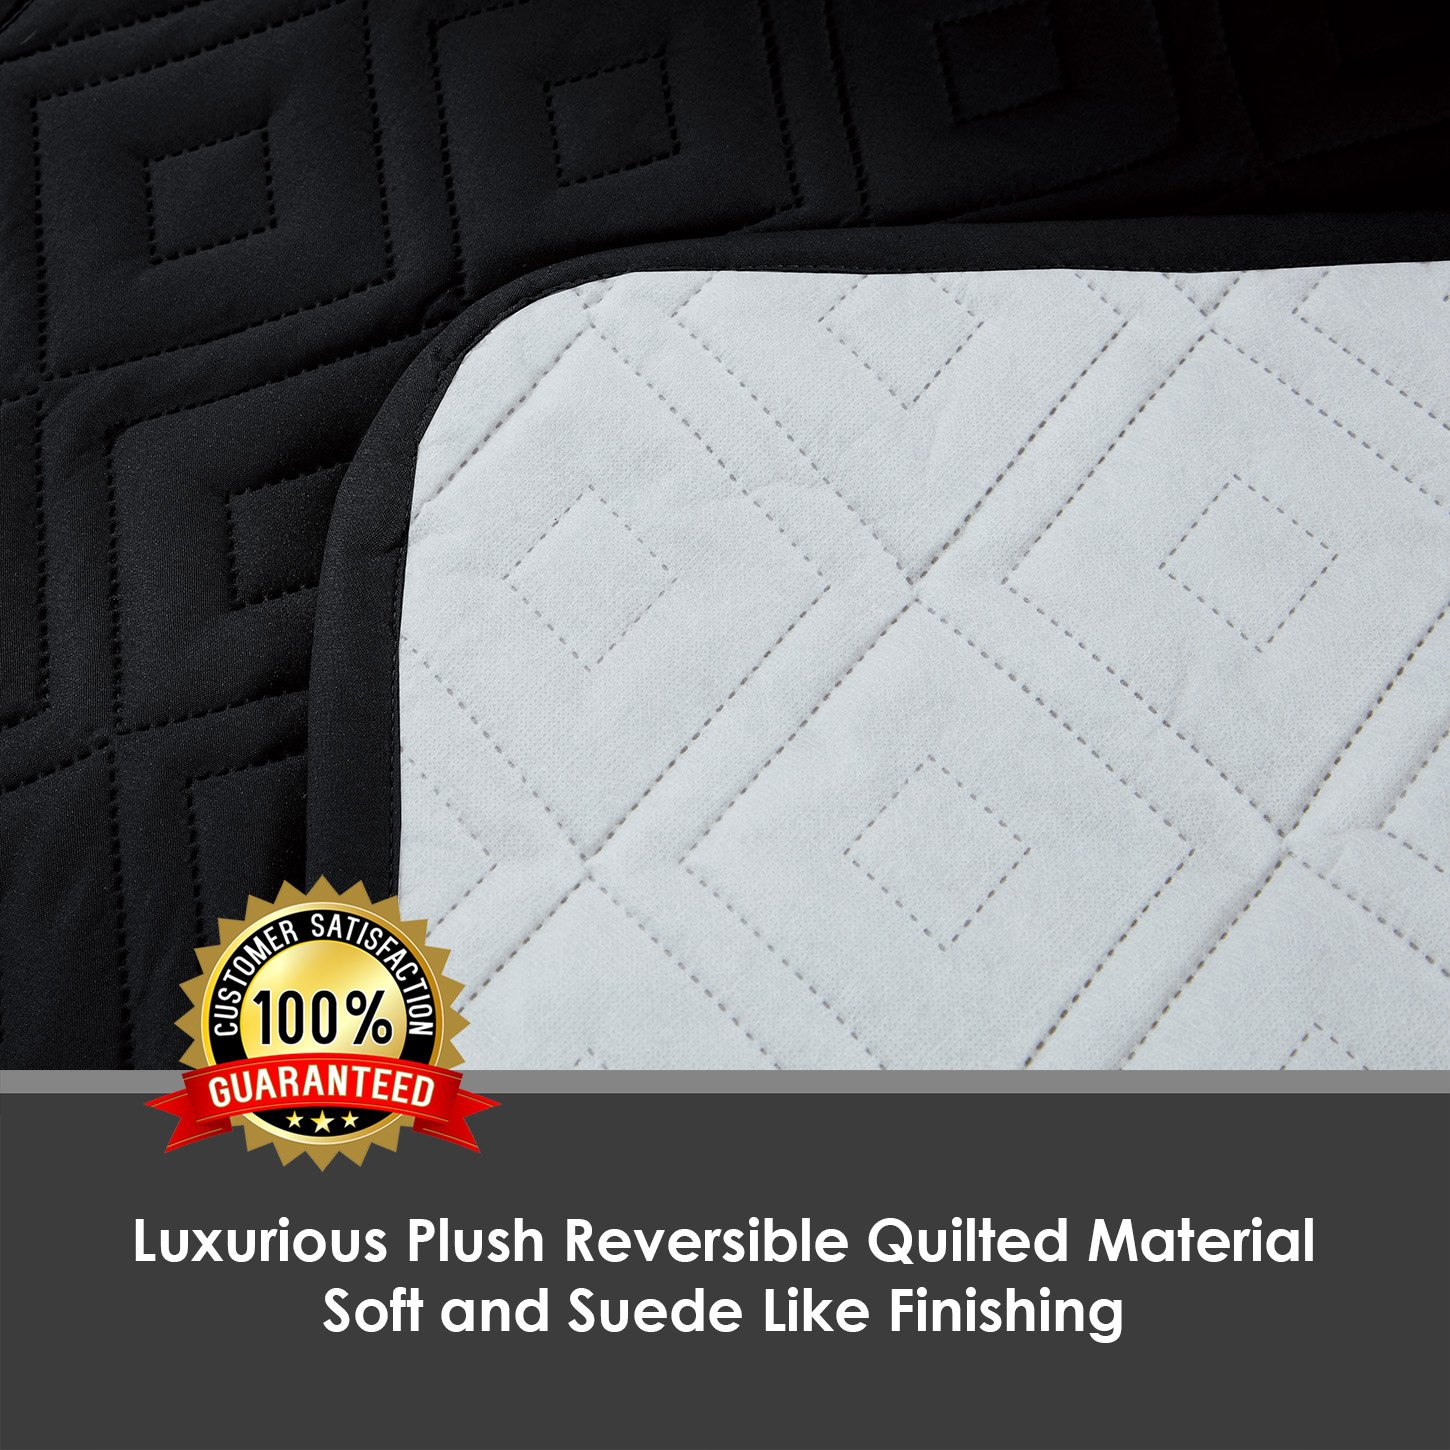 2 /& 3 Seater Imperial Rooms New Luxury Quilted Furniture Cover Sofa Protector Settee Cover Throw Water Resistant Embossed Pattern Available in Three Sizes 1 One Seater, Black